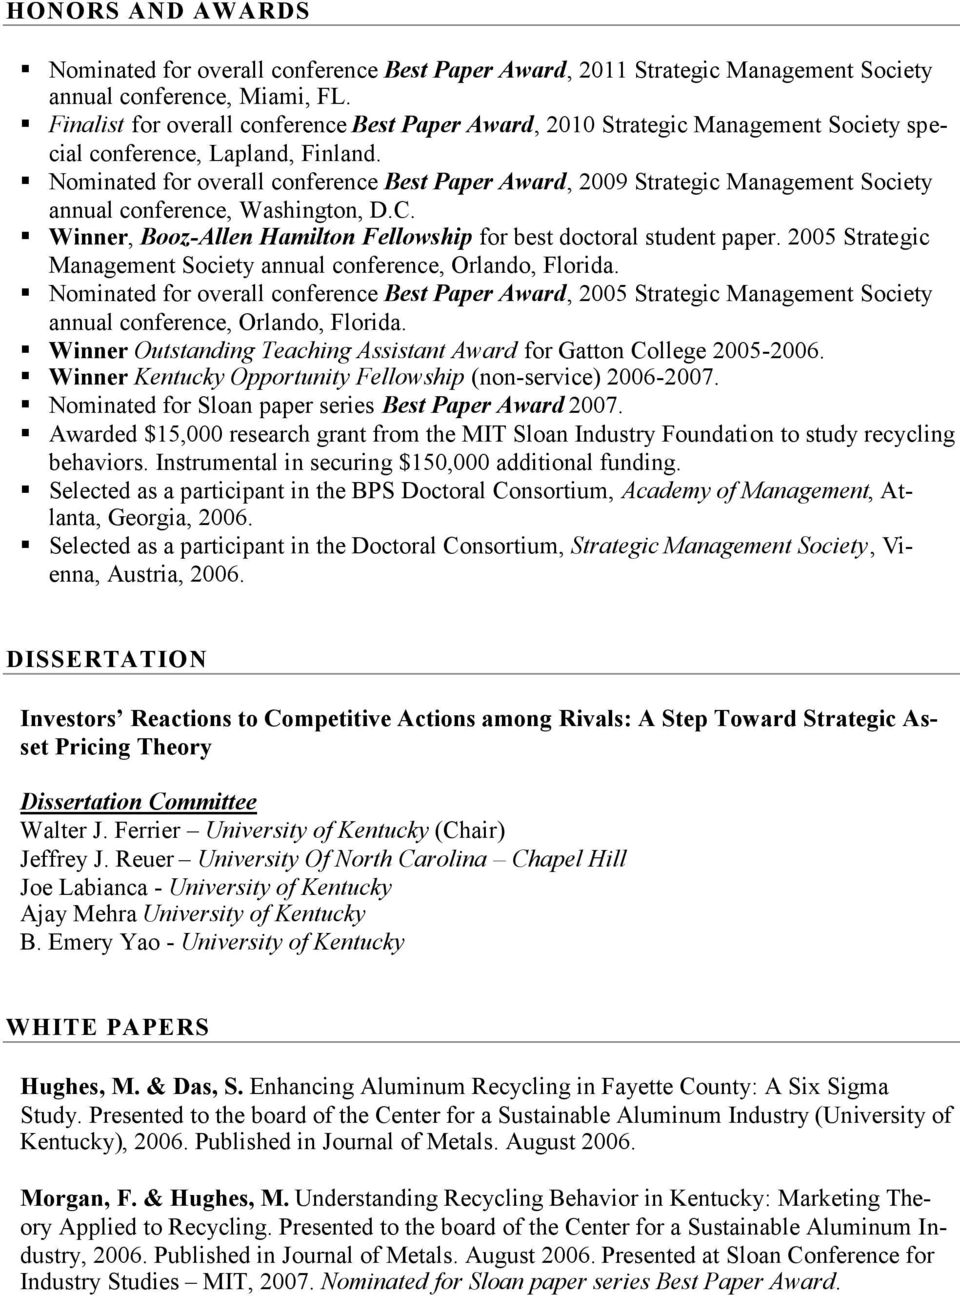 Nominated for overall conference Best Paper Award, 2009 Strategic Management Society annual conference, Washington, D.C. Winner, Booz-Allen Hamilton Fellowship for best doctoral student paper.